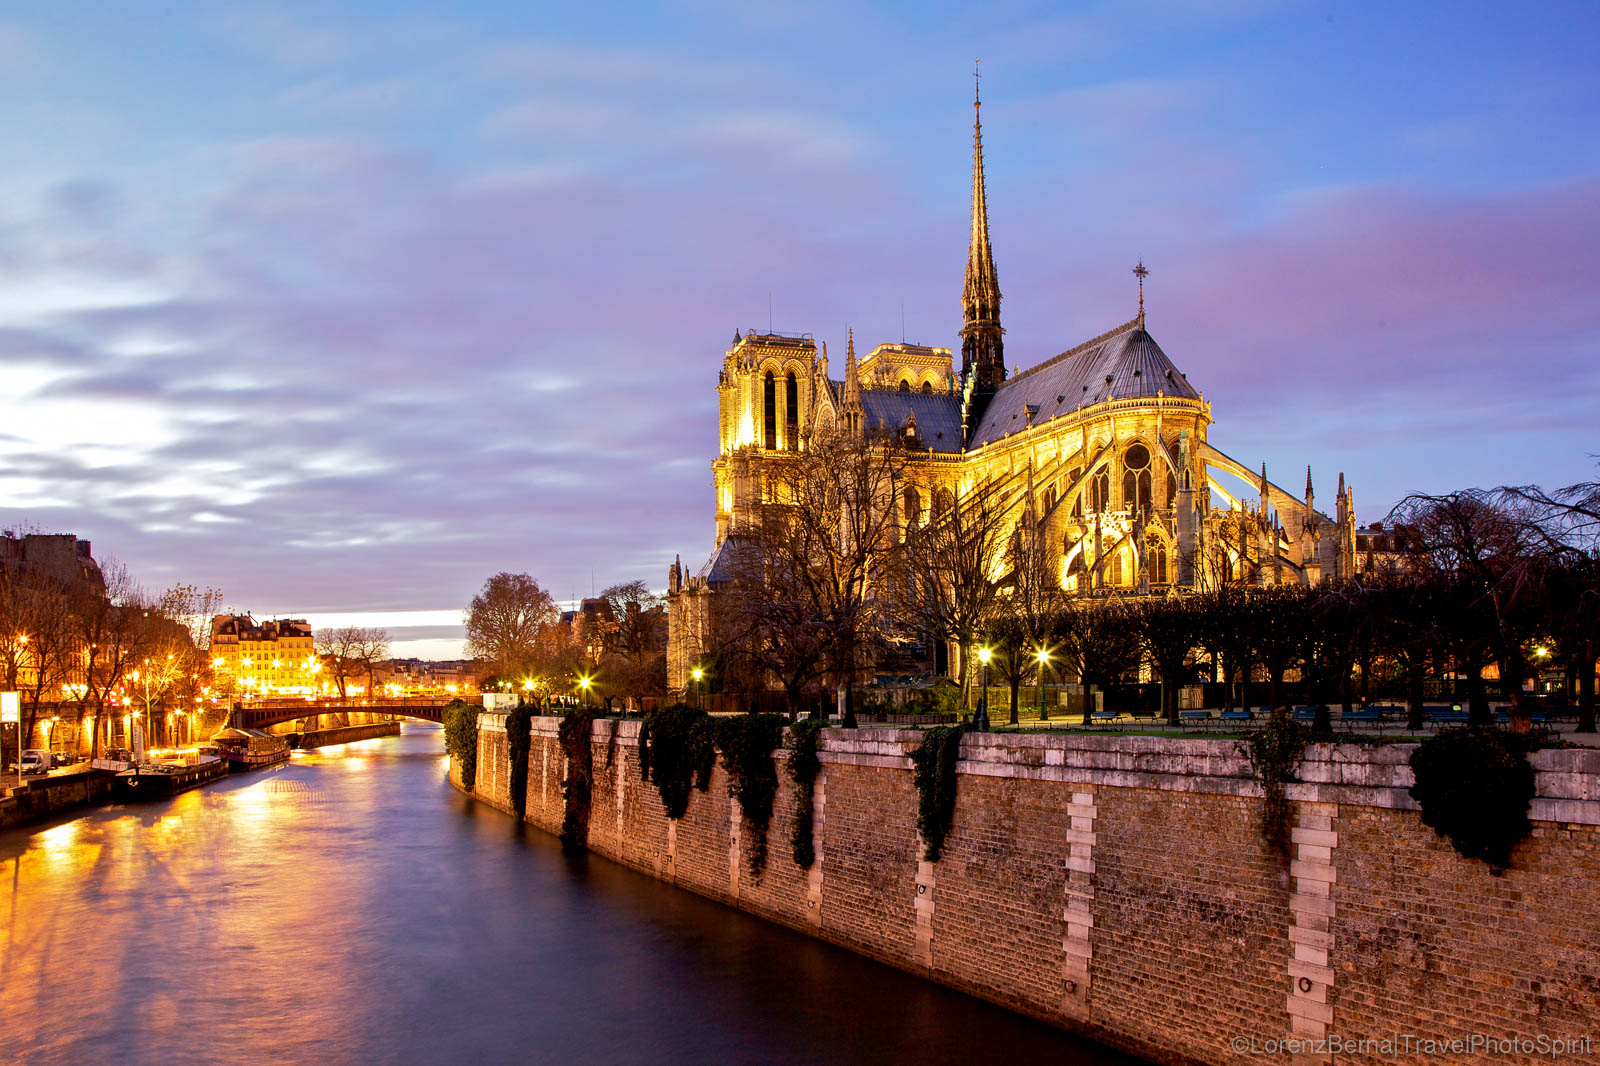 View from the canals on the iconic cathedral of Notre Dame, Paris